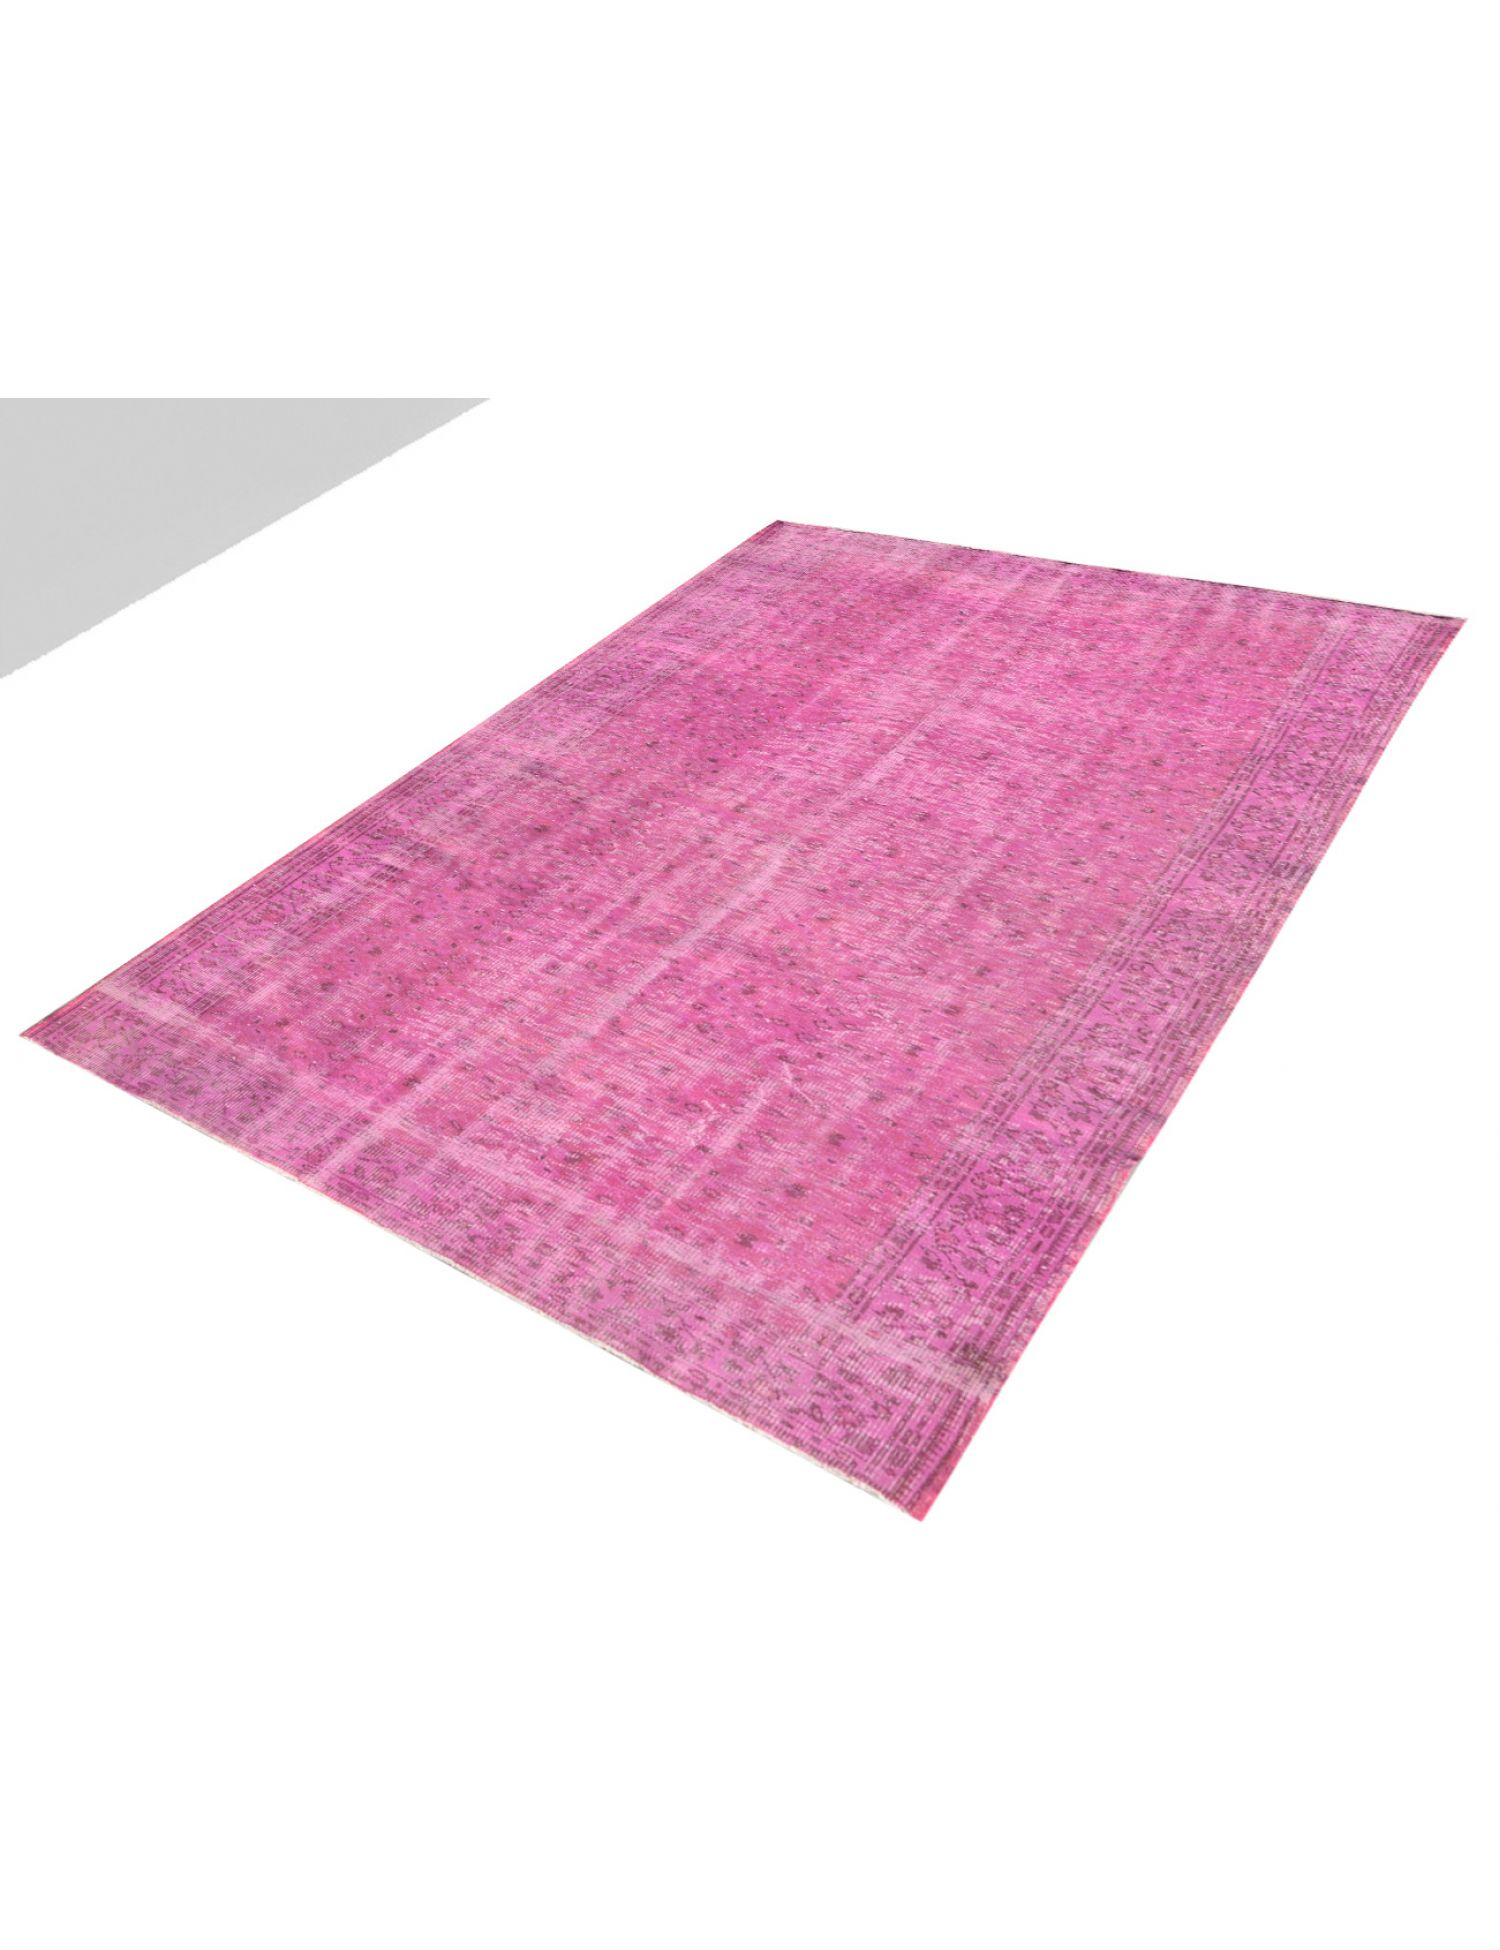 Vintage Carpet  purple <br/>304 x 200 cm